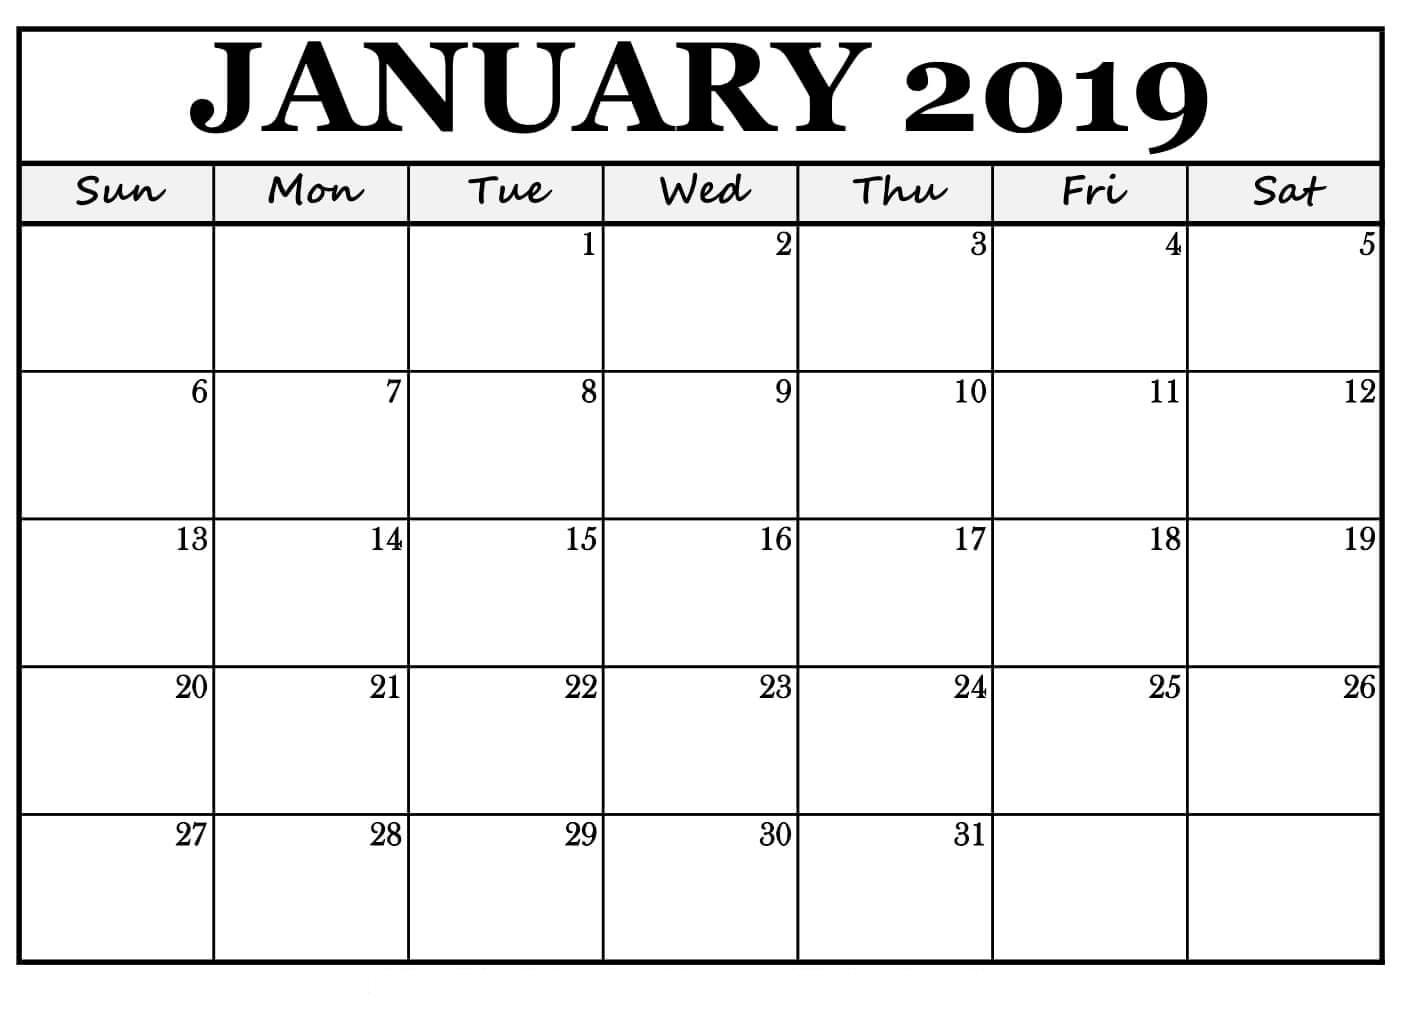 January 2019 Calendar Printable Planner Pages